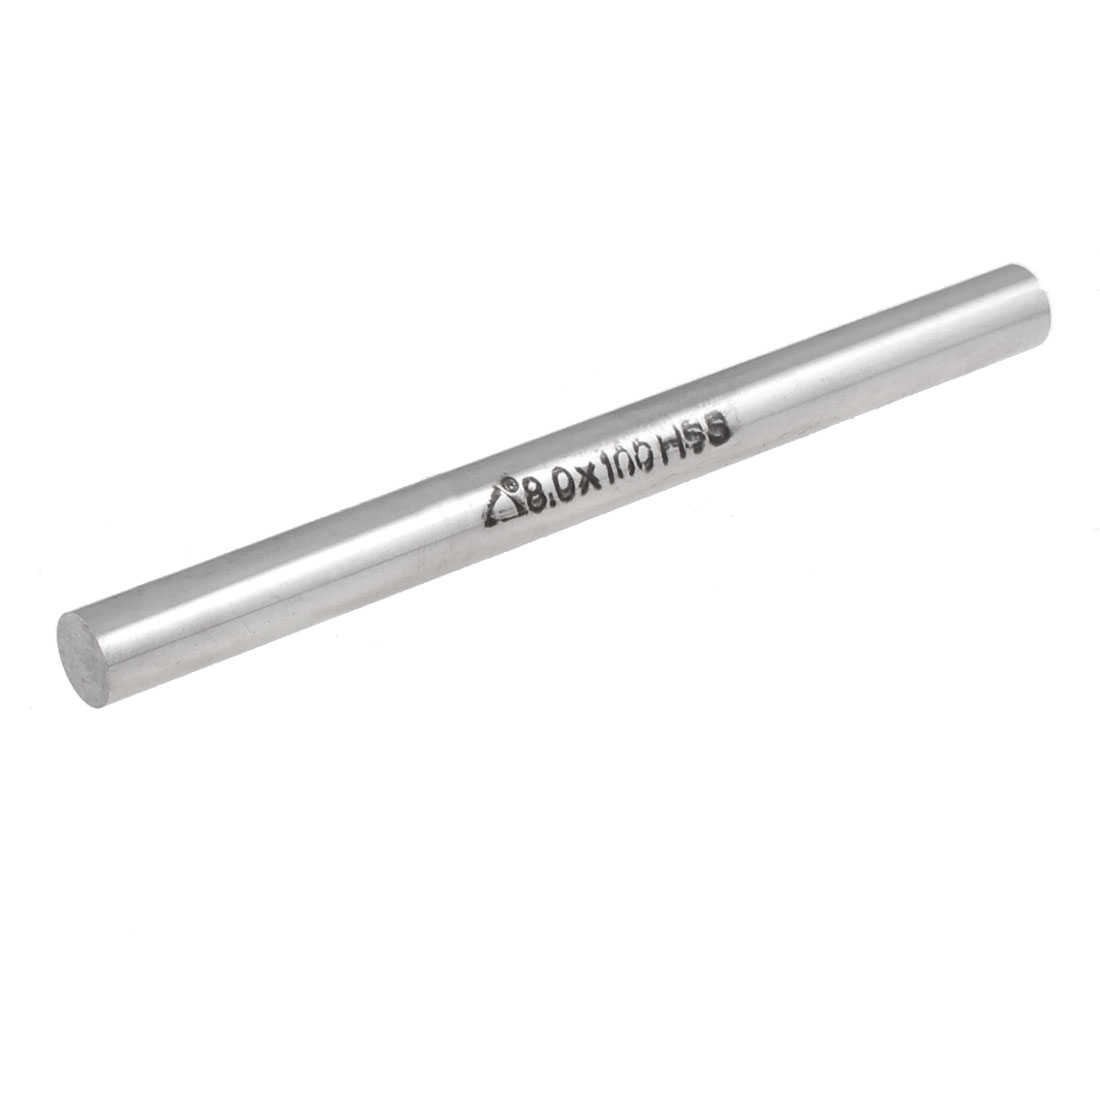 Unique Bargains 8mm x 100mm High Speed Steel HSS Lathe Turning Tool Bar Silver Tone